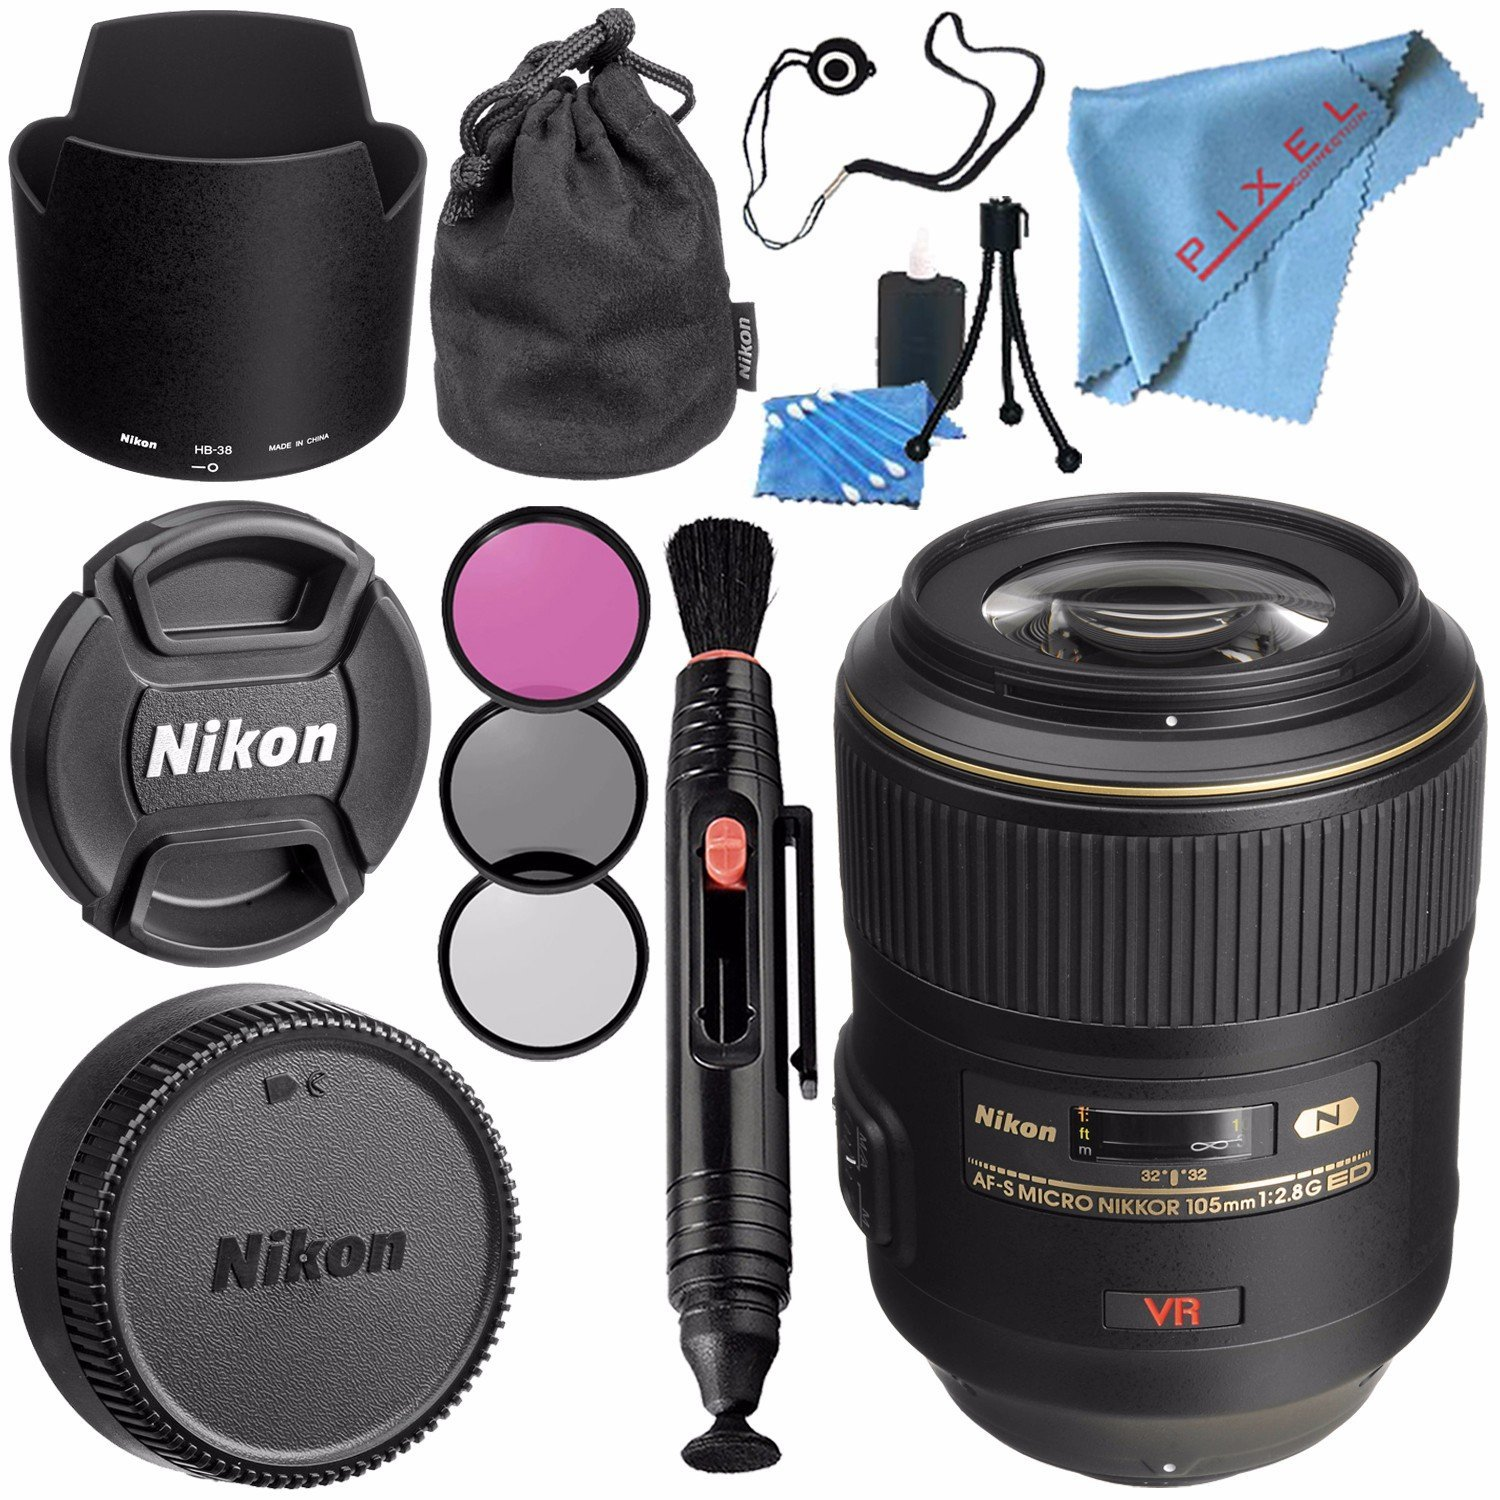 Nikon AF-S VR Micro-NIKKOR 105mm f/2.8G IF-ED Lens 2160 + 62mm 3 Piece Filter Kit + Lens Pen Cleaner + Fibercloth + Lens Capkeeper + Lens Cleaning Kit Bundle